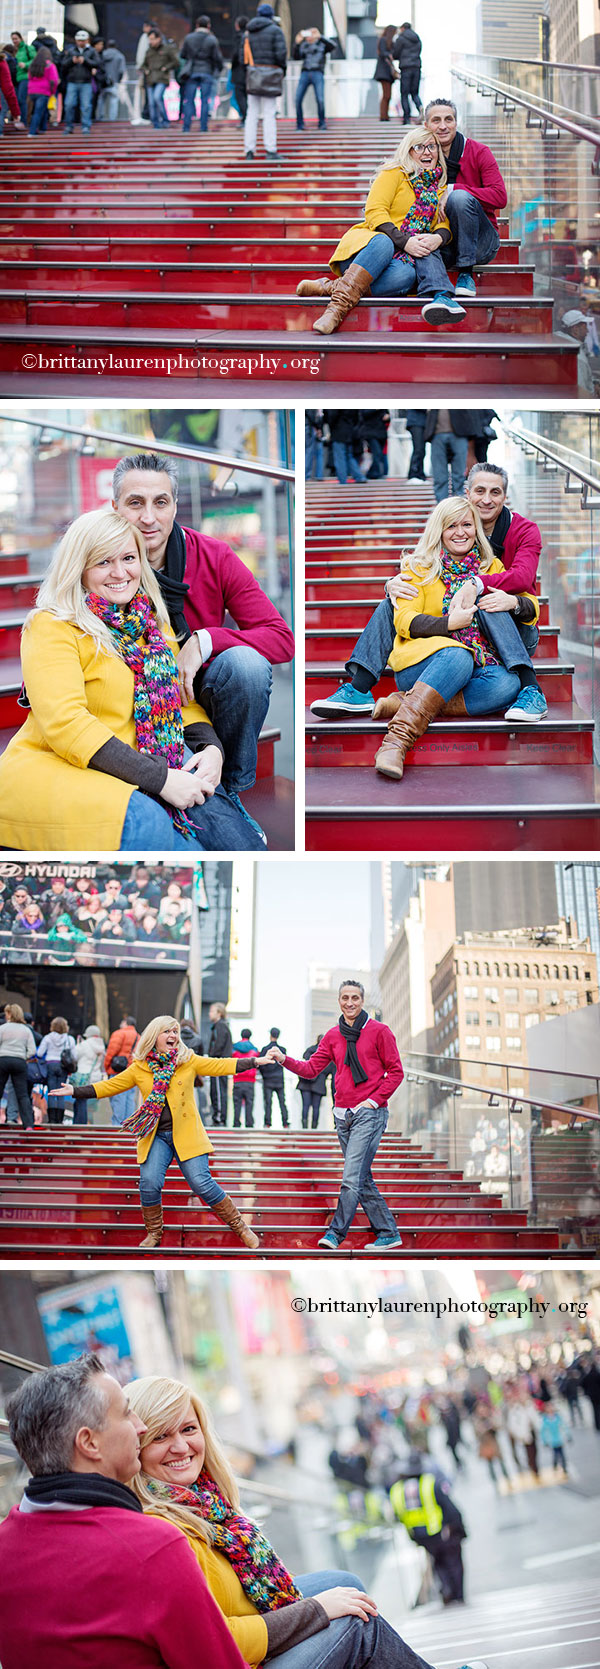 Times Square NYC photo shoot